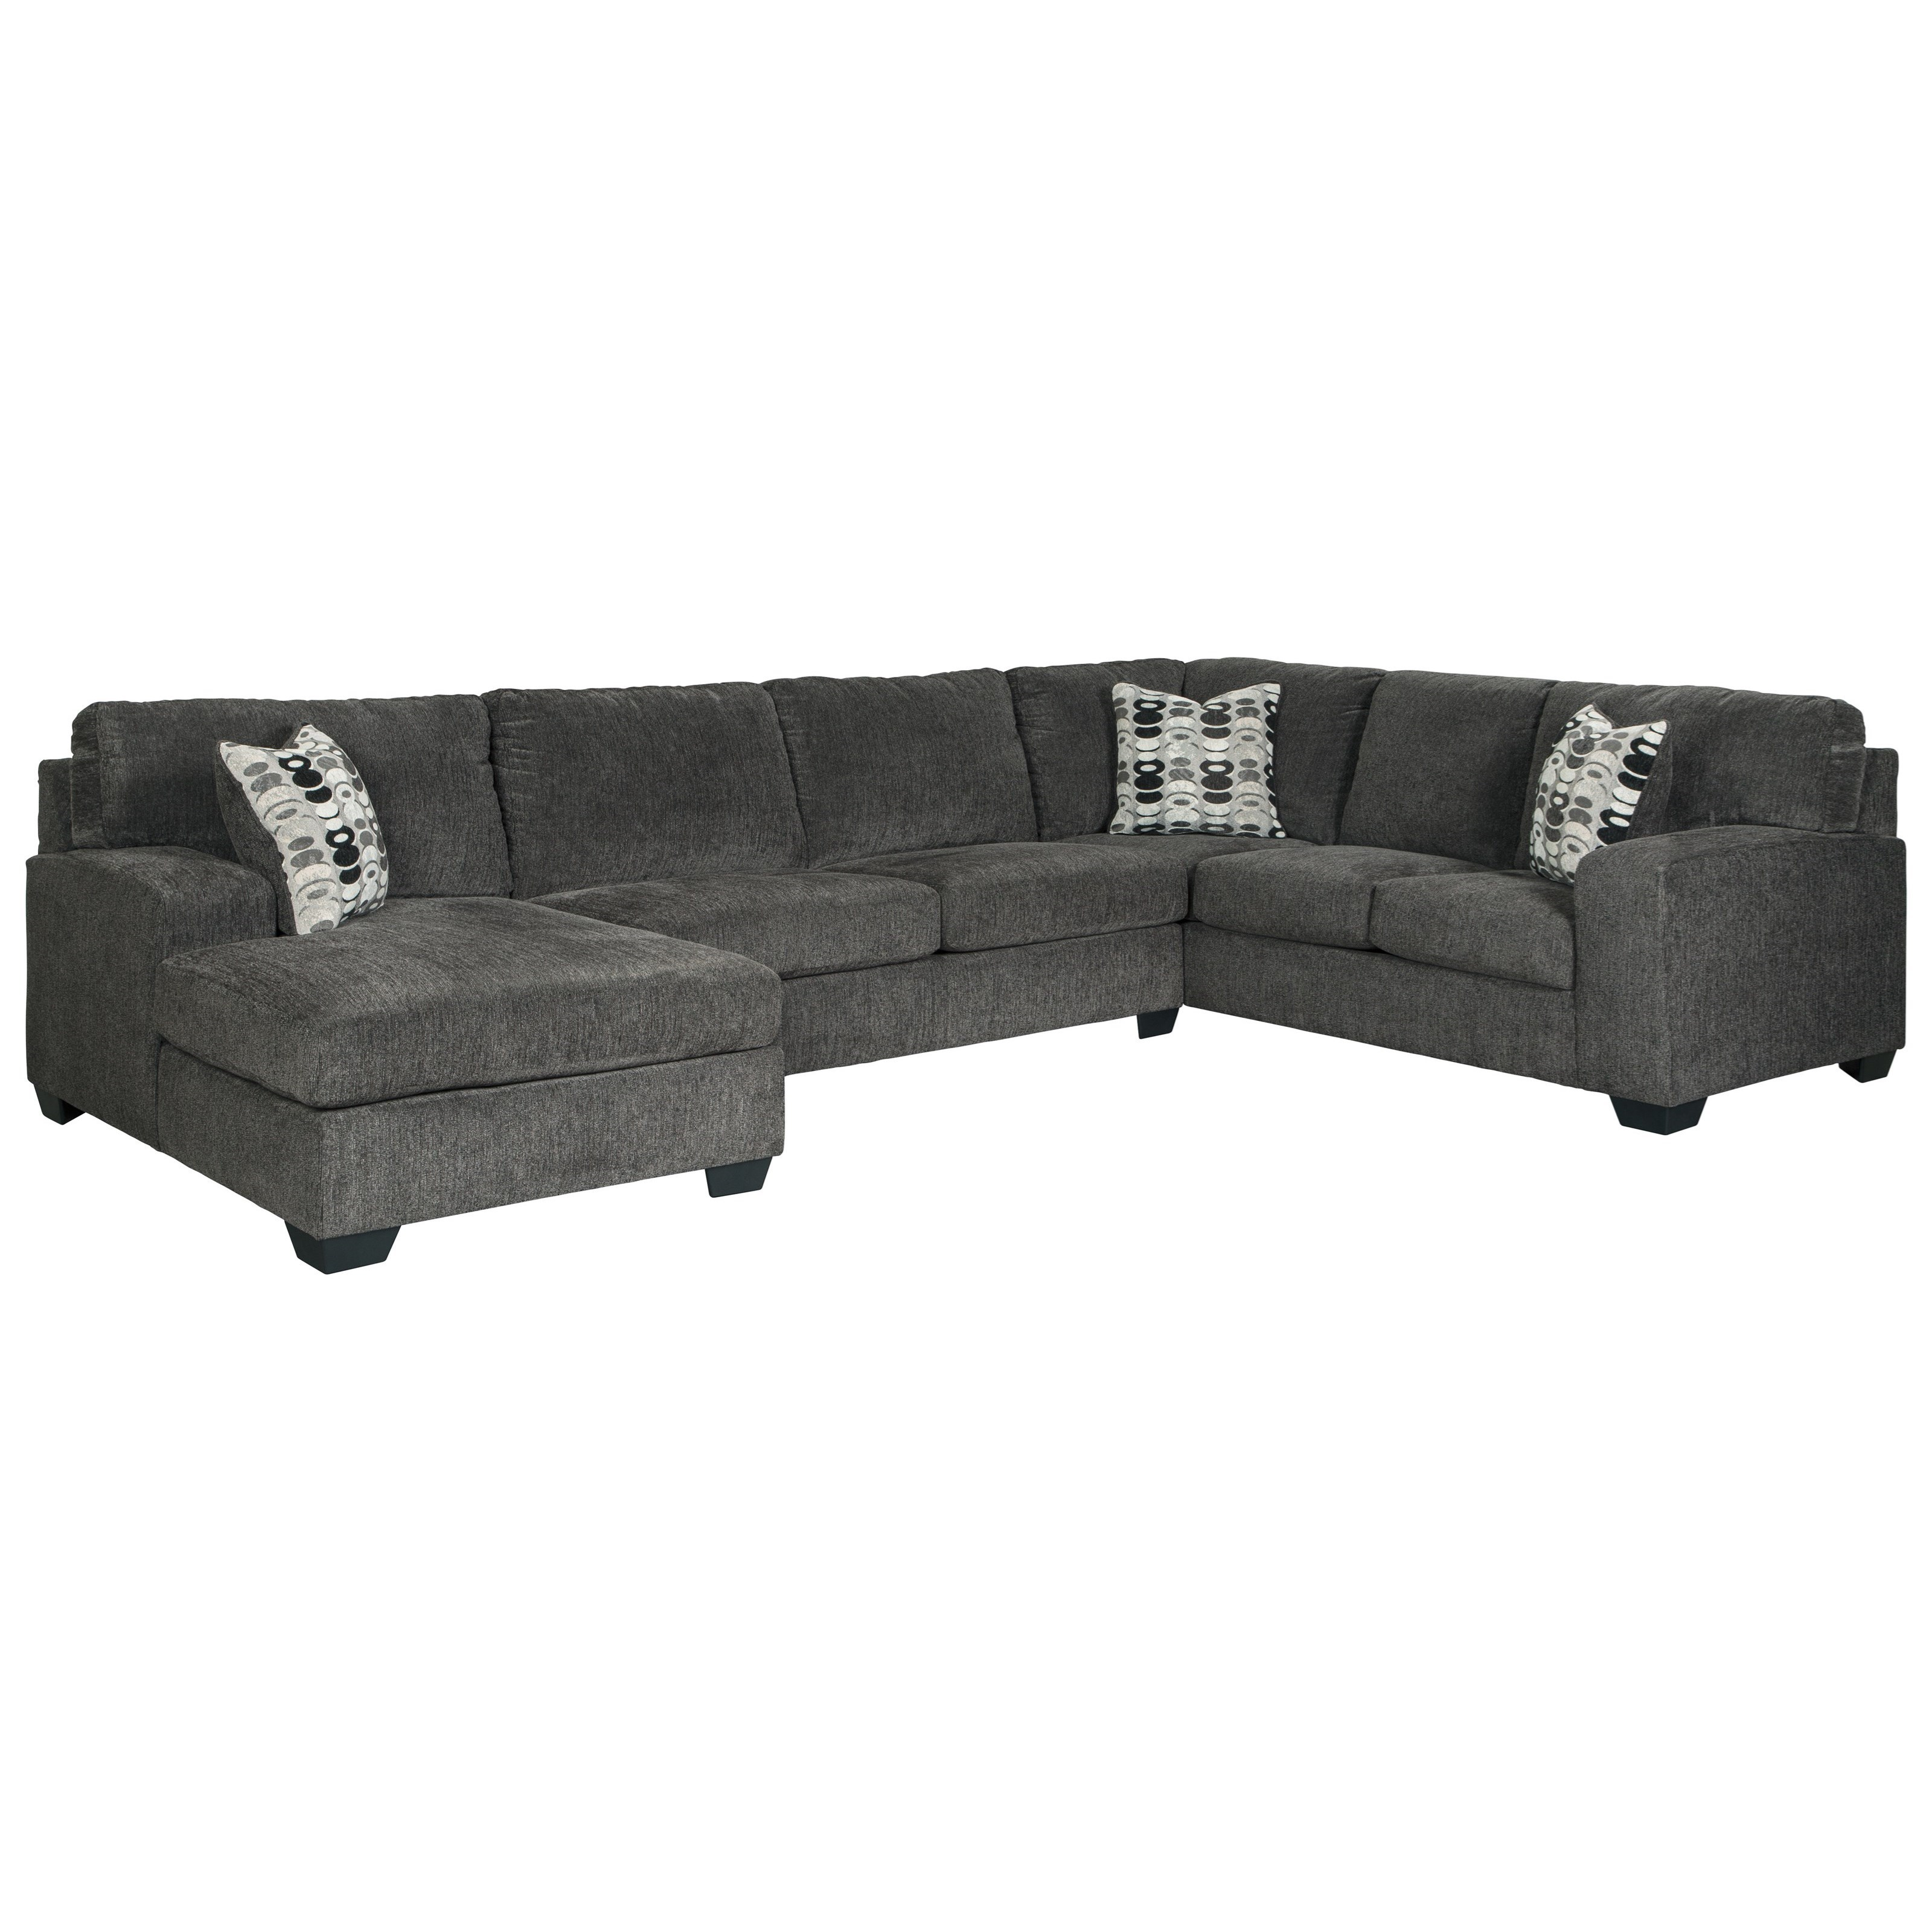 Furniture Chaise Ballinasloe Contemporary 3 Piece Sectional With Chaise By Signature Design By Ashley At Furniture And Appliancemart